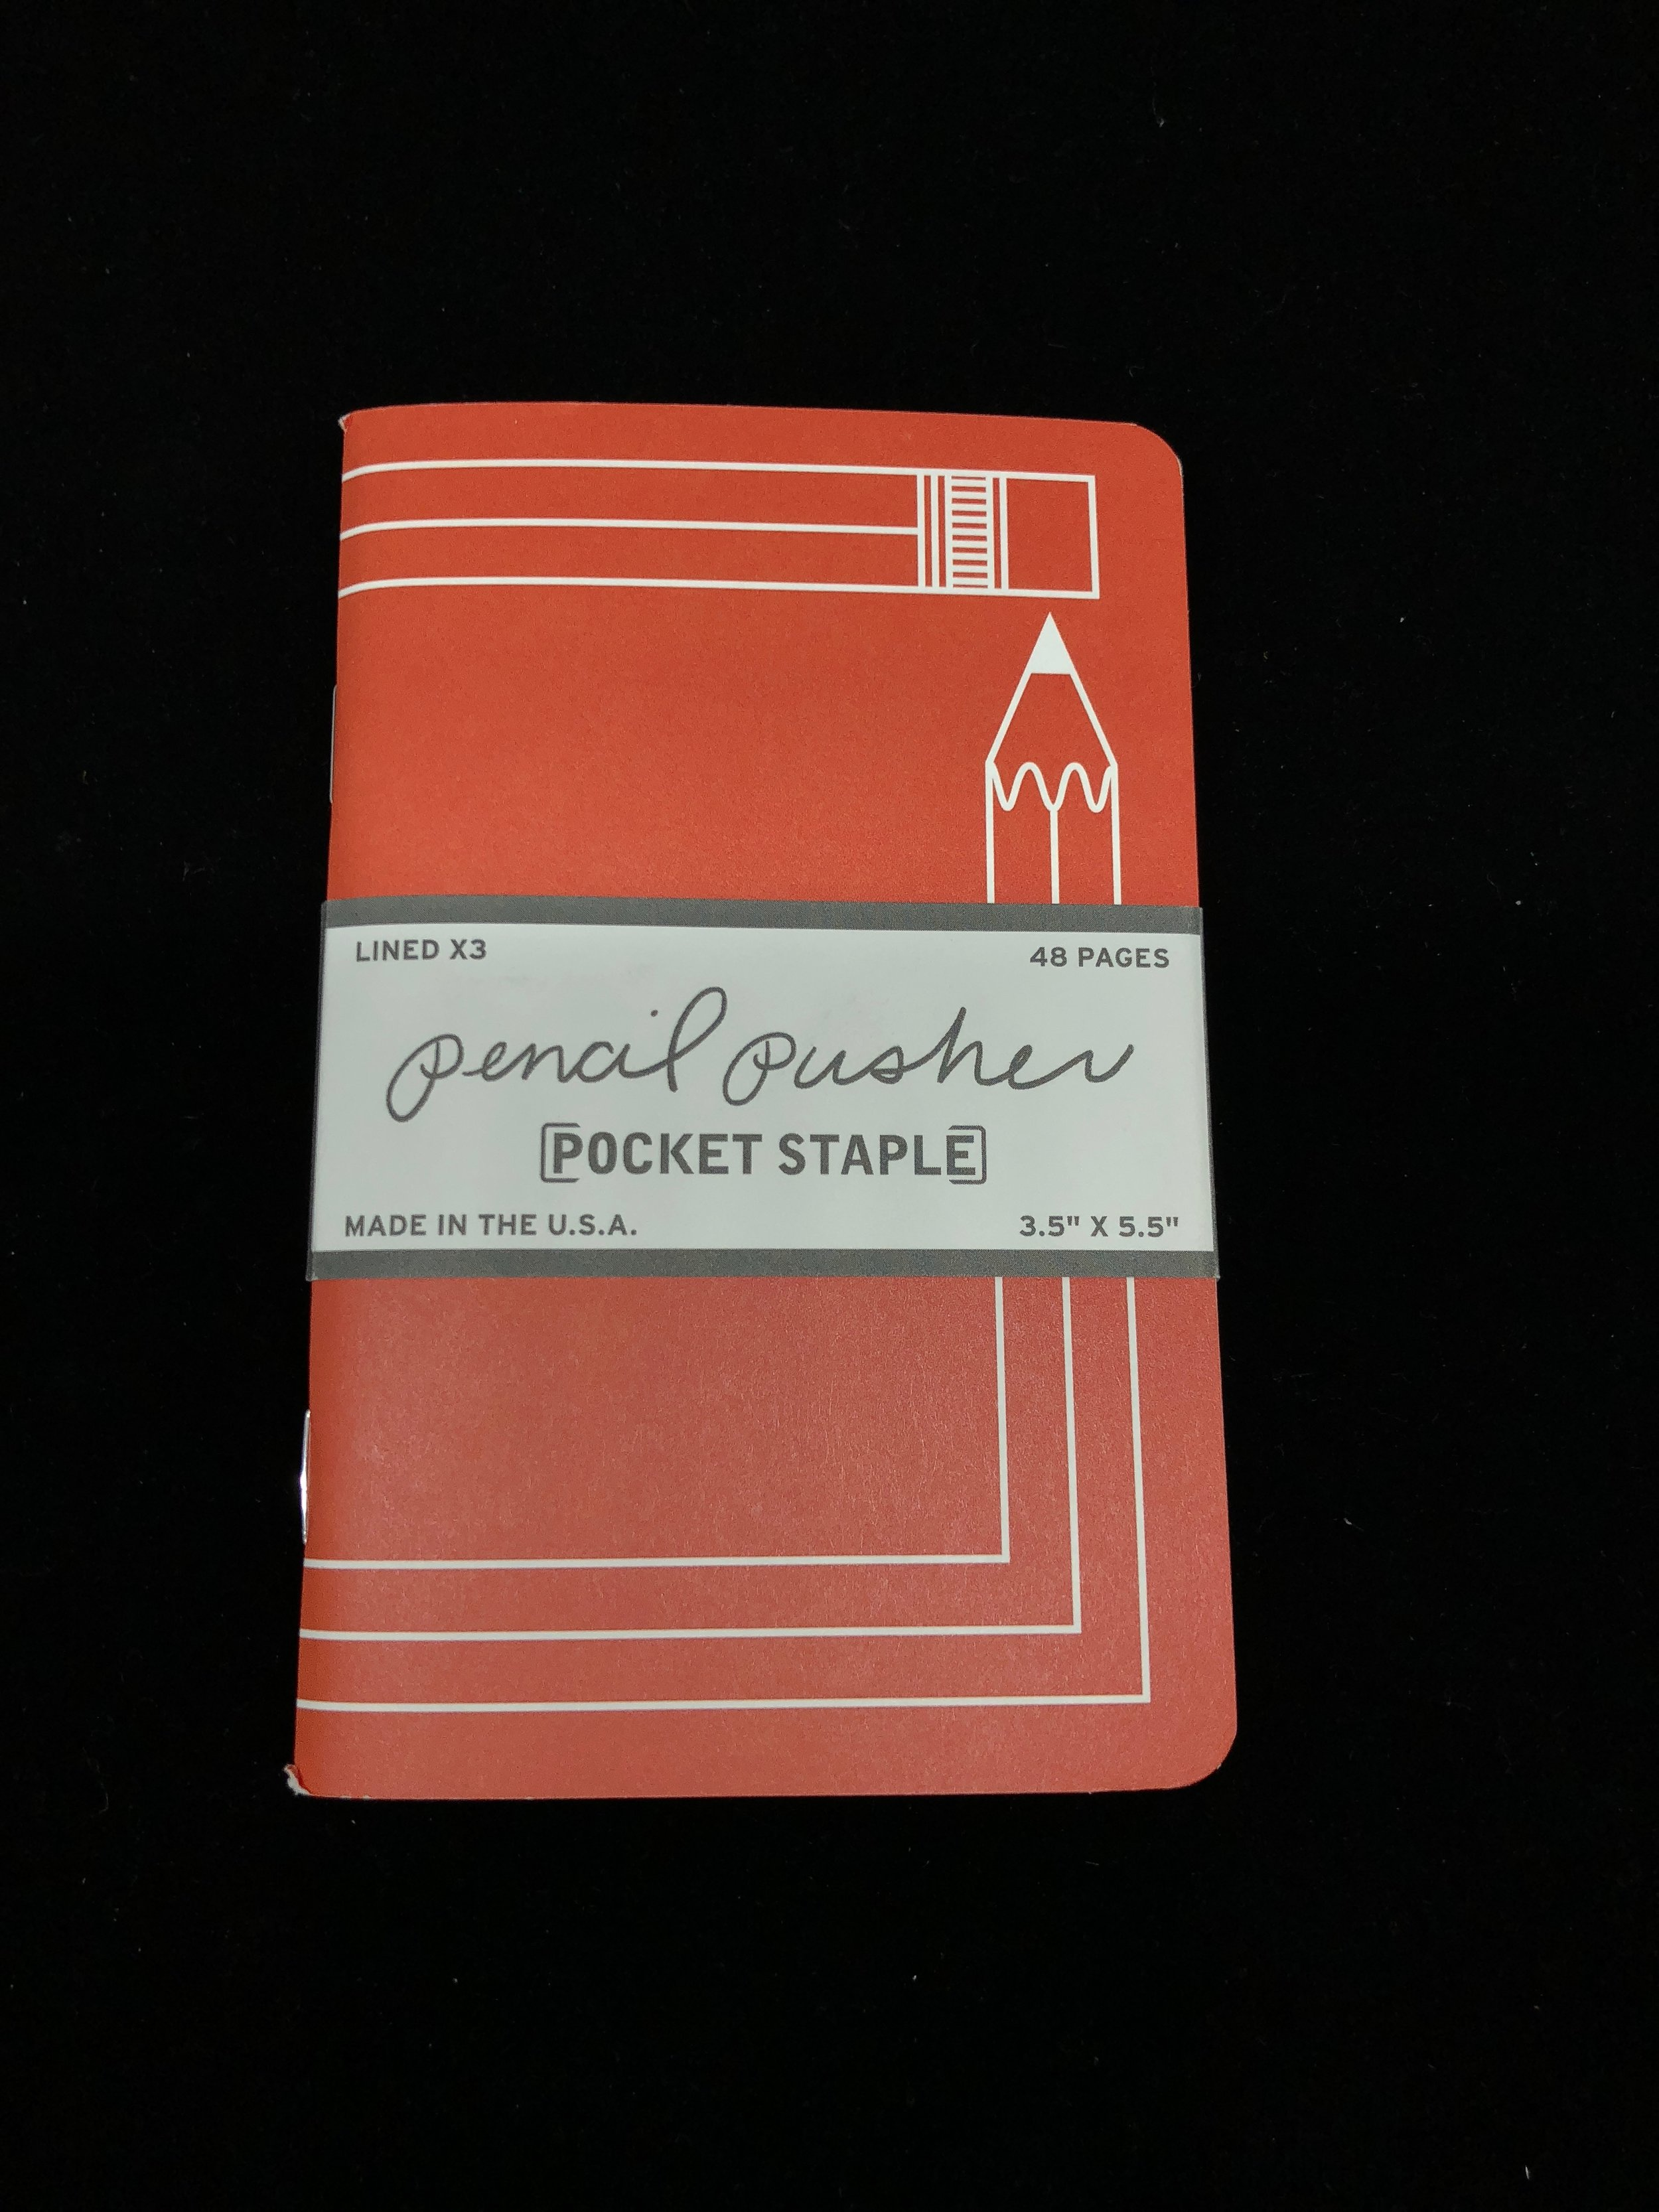 story-supply-co-pencil-pusher-notebook-1.jpg